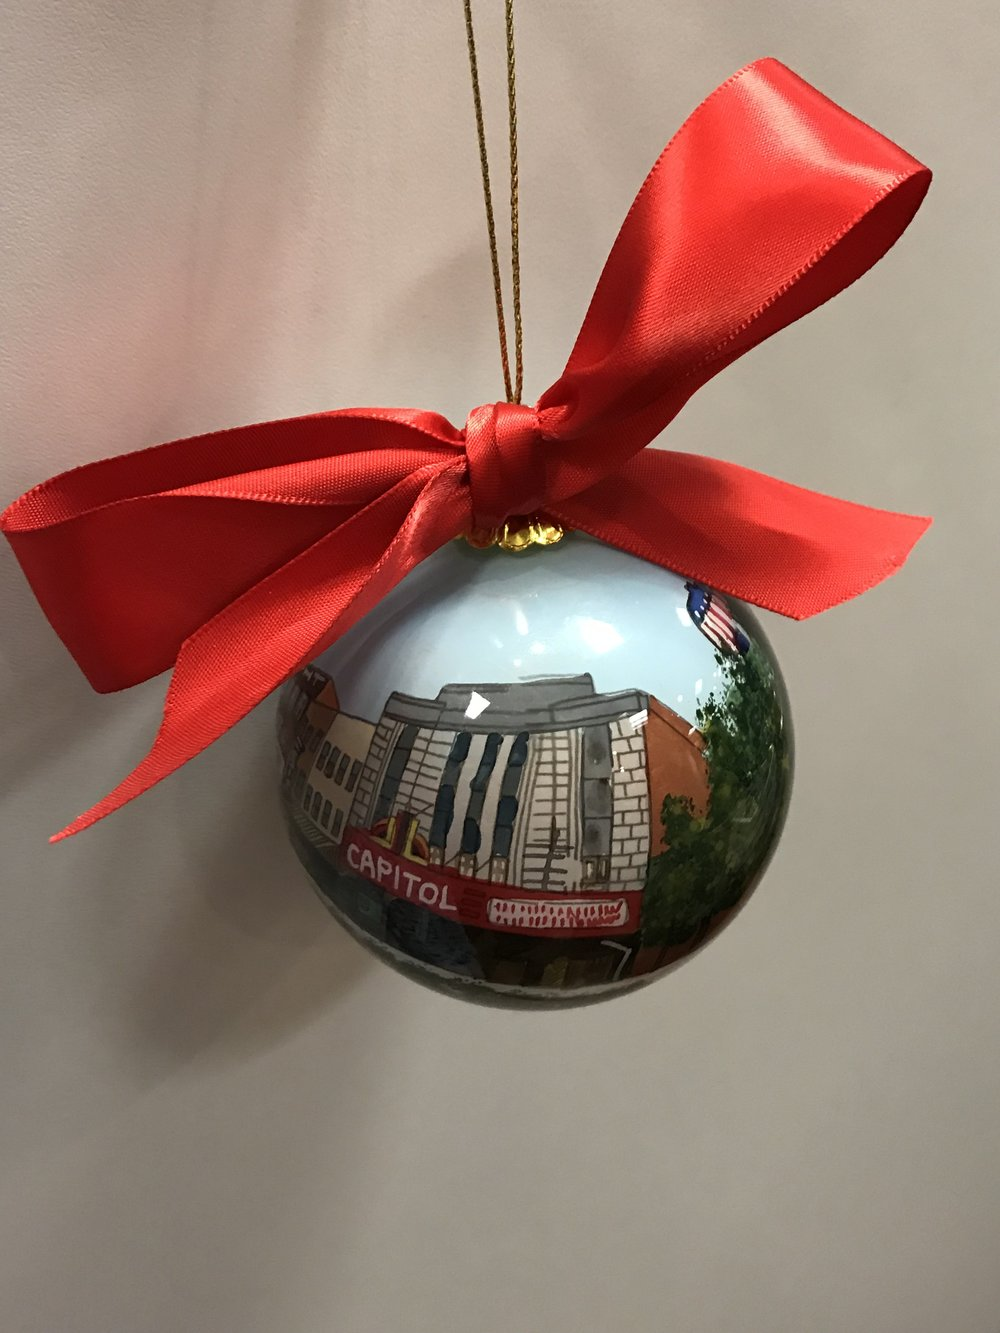 This hand painted downtown Bowling Green ornament is sold exclusively at Barbara Stewart Interiors!